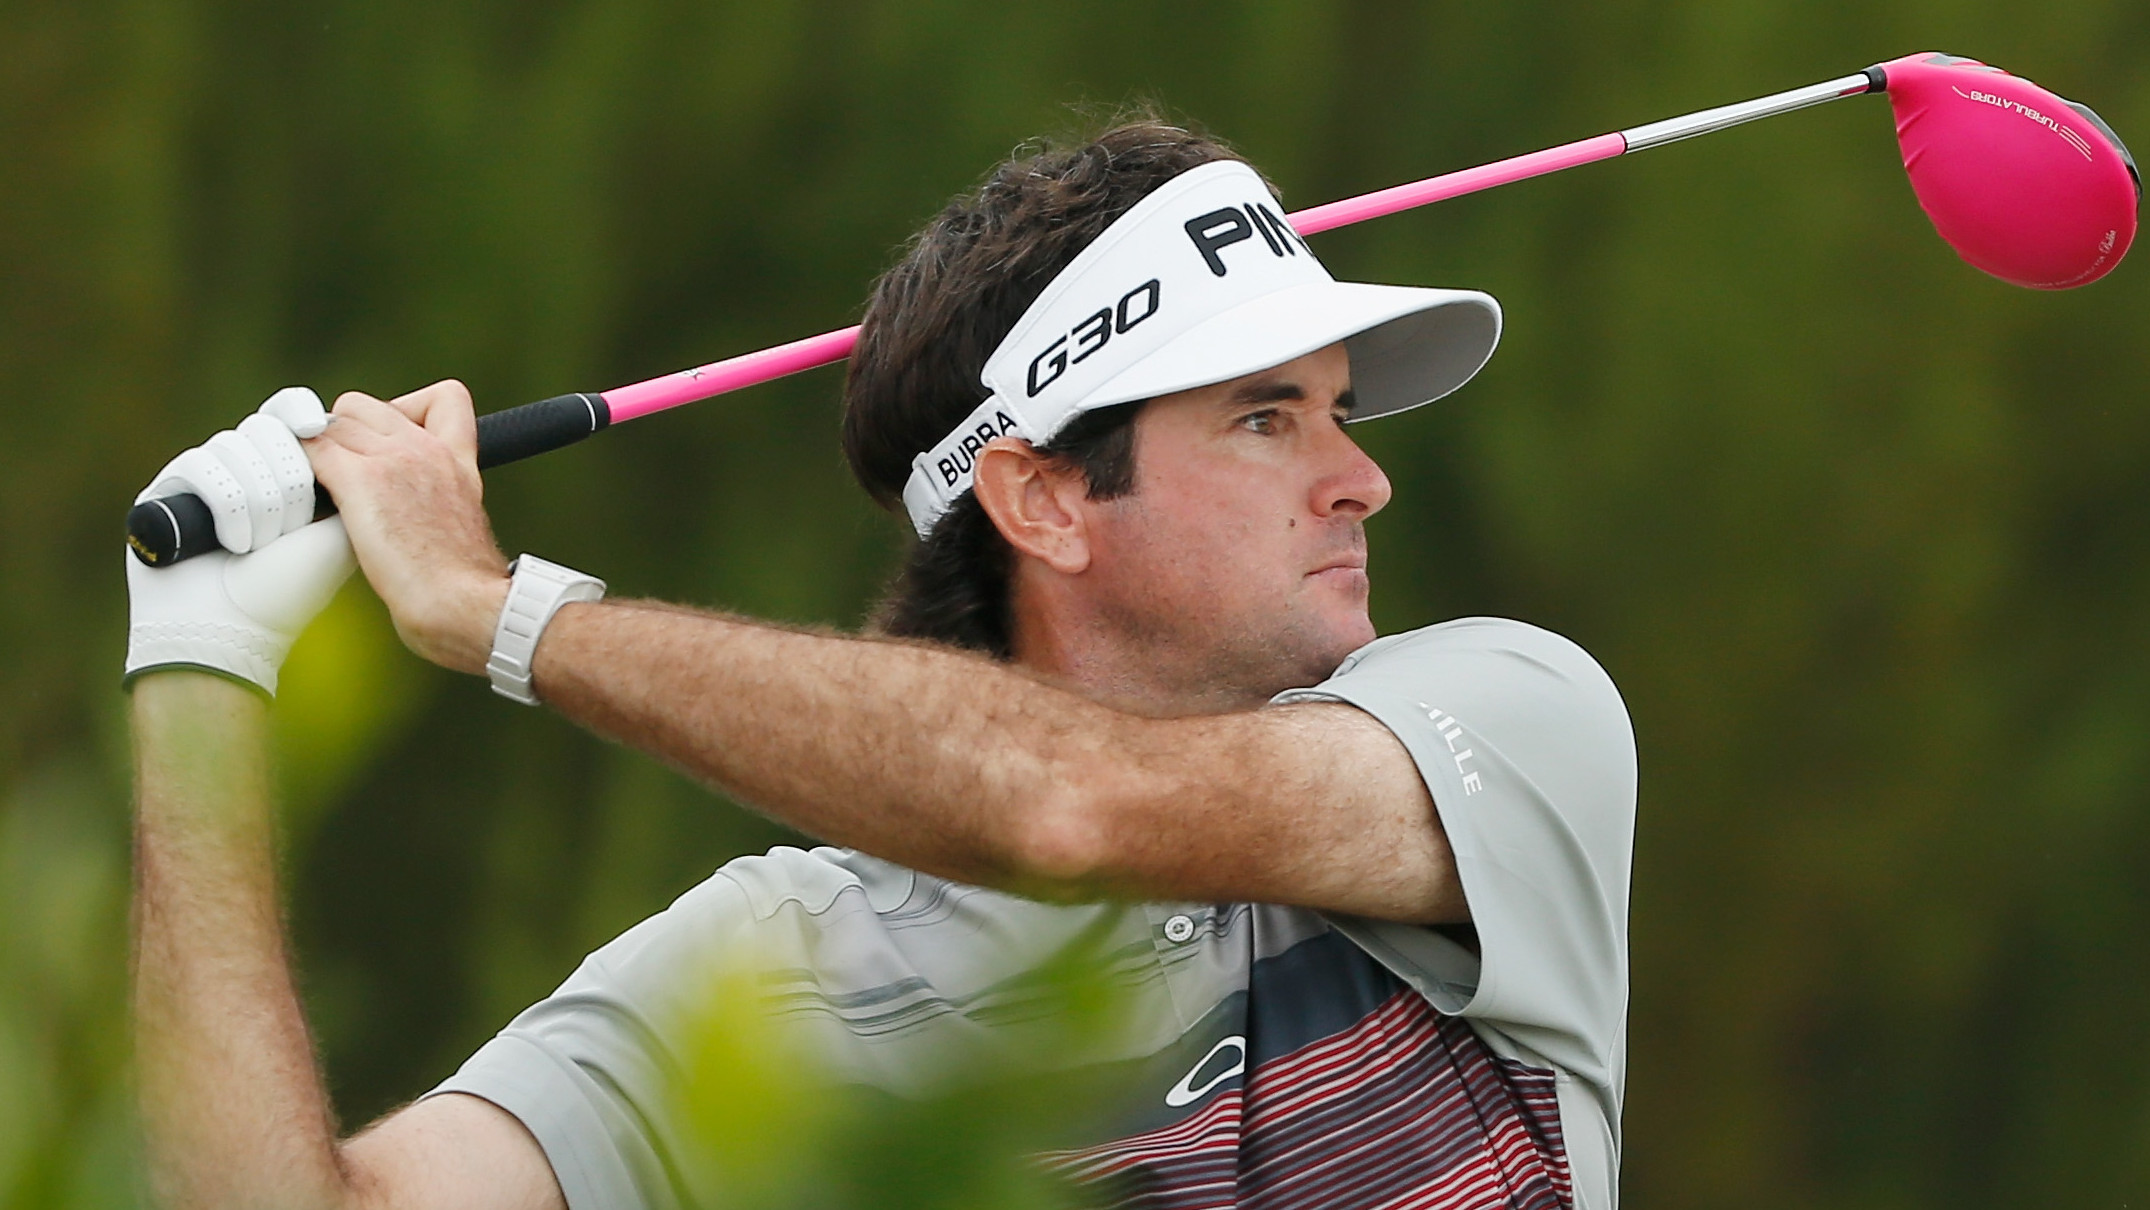 Harman Leads, Bubba Rallies At Travelers